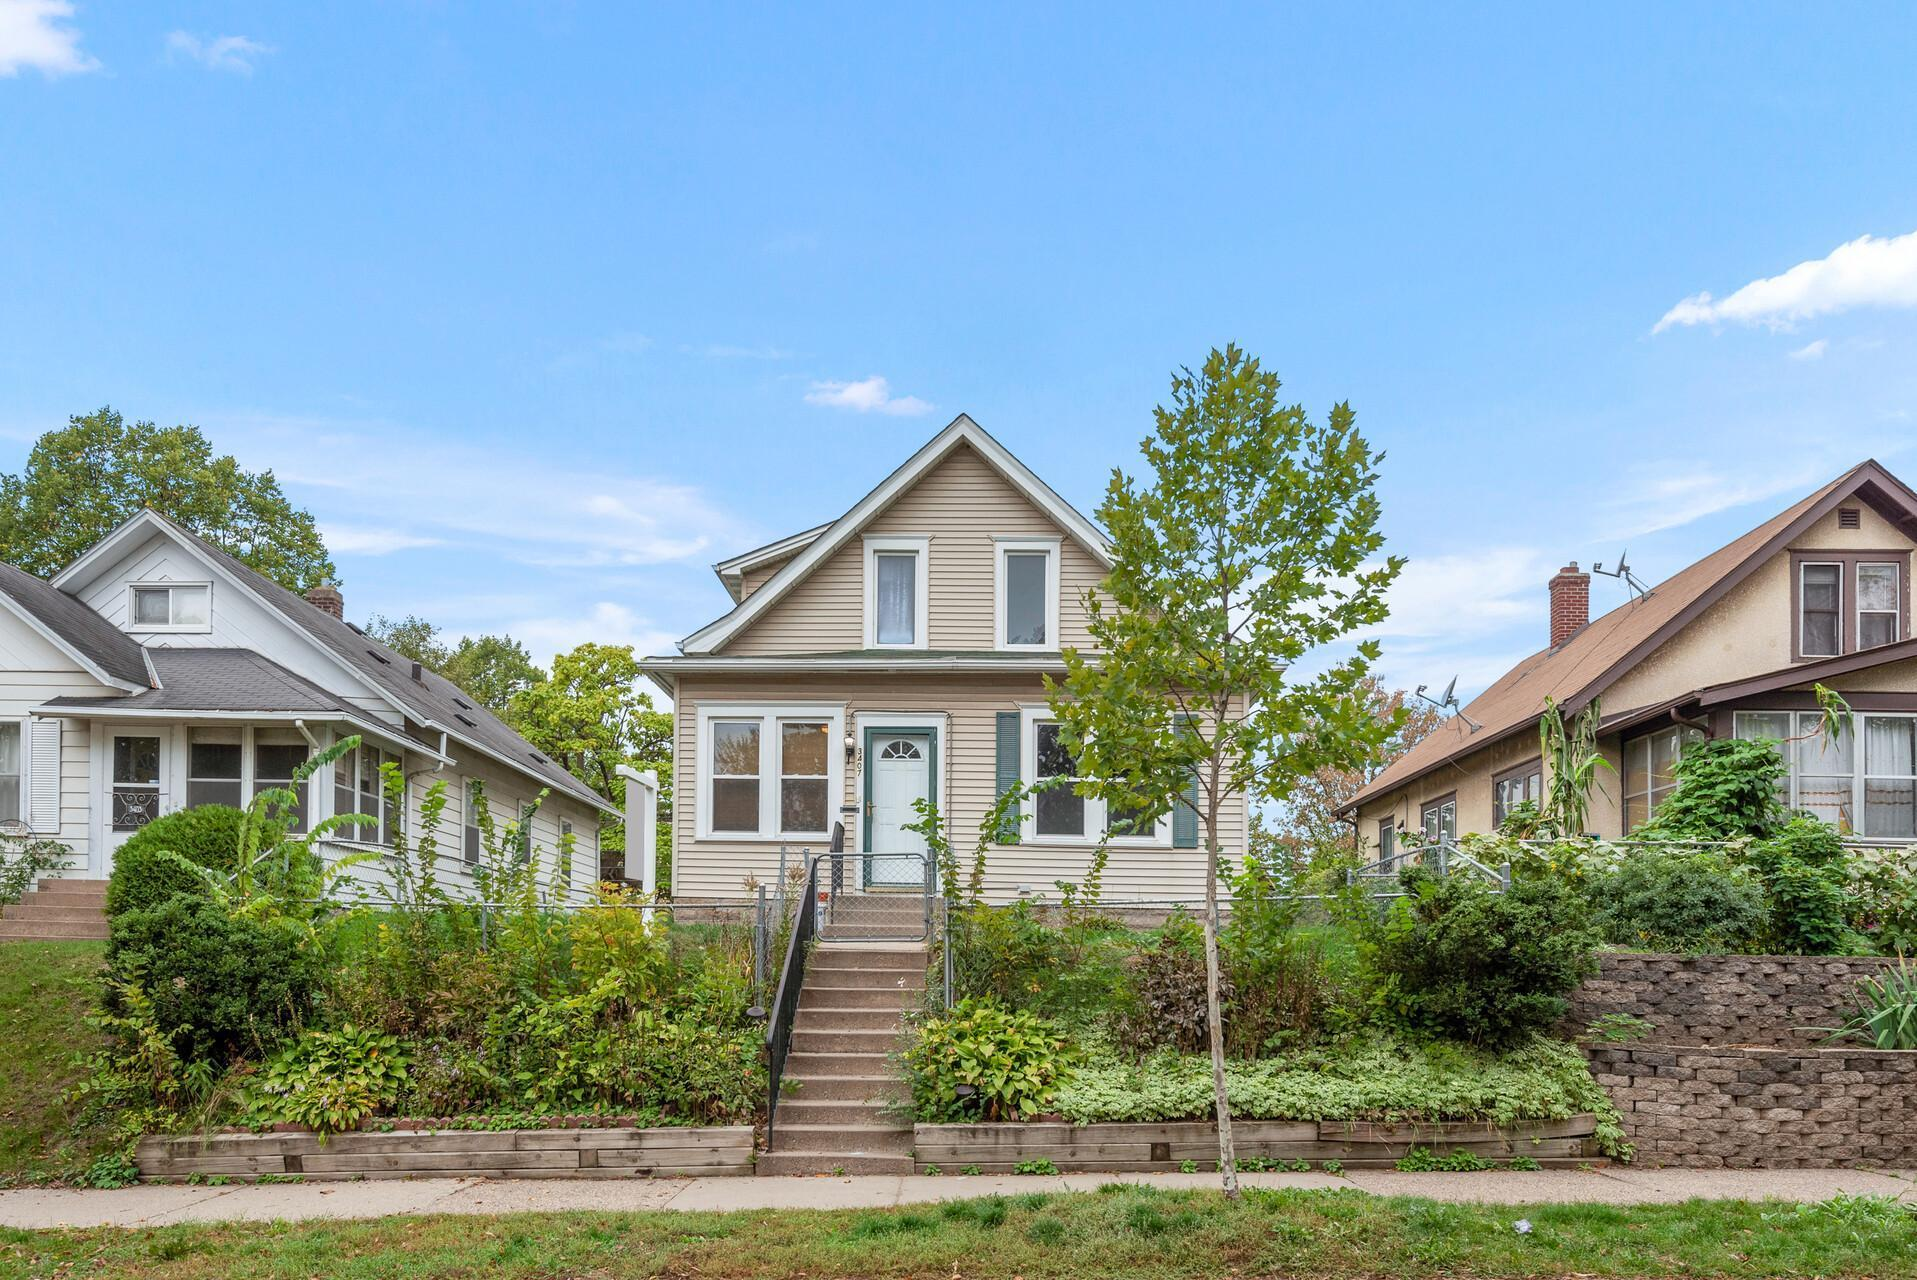 3407 Emerson Avenue, Minneapolis, Minnesota 55412, 3 Bedrooms Bedrooms, ,1 BathroomBathrooms,Residential,For Sale,Emerson,NST6109130